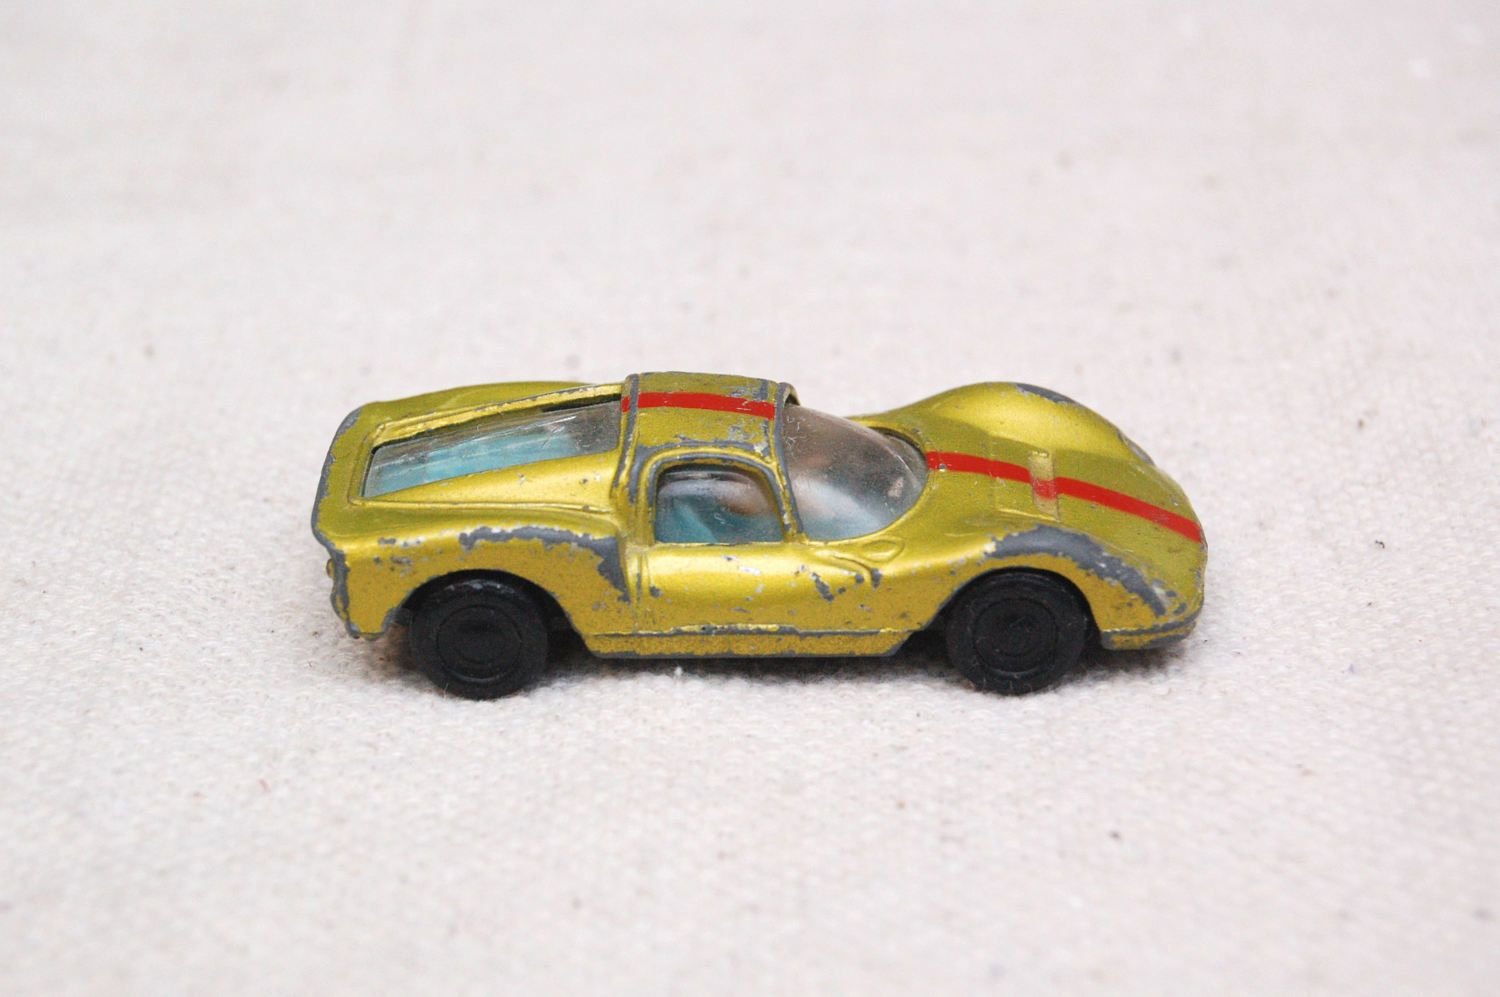 Vintage Mini Marx Uno Ferrari P3 Super Speed Car Made In Hong Kong 1970 S Gold With Red Stripe By Rememberw Vintage Toys For Sale Vintage Toys Classic Toys